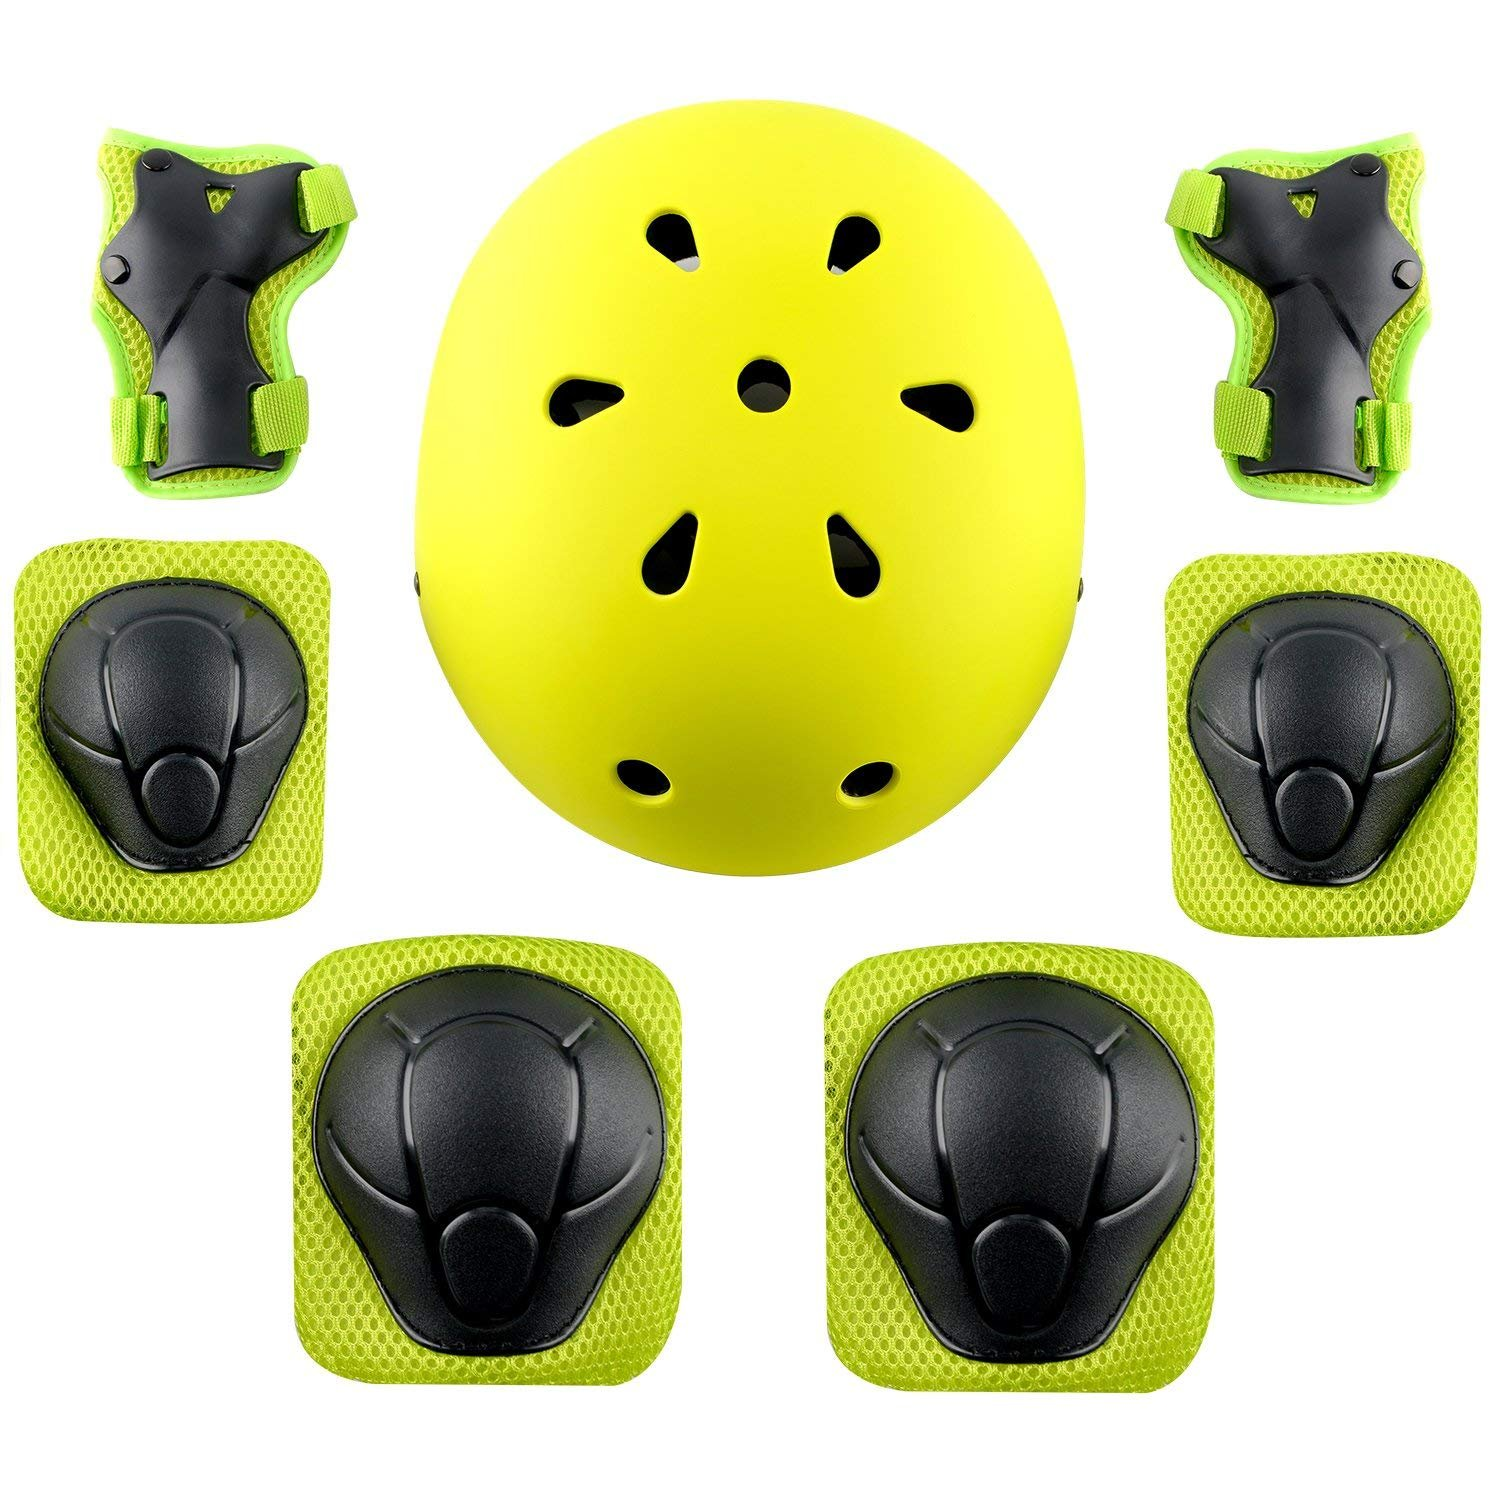 MAXZOLA Kids Protective Pads Knee Pads Elbow Pads Wrist Guards 3 In 1 Protective Gear Set (Green helmet+protective pads)